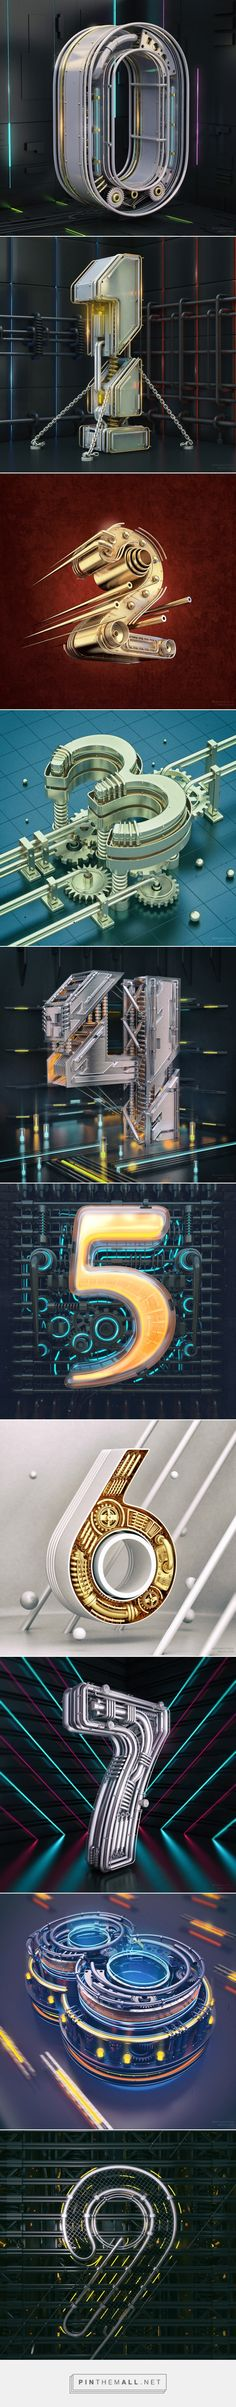 Numbers #1 on Behance - https://www.behance.net/gallery/38425573/Numbers-1